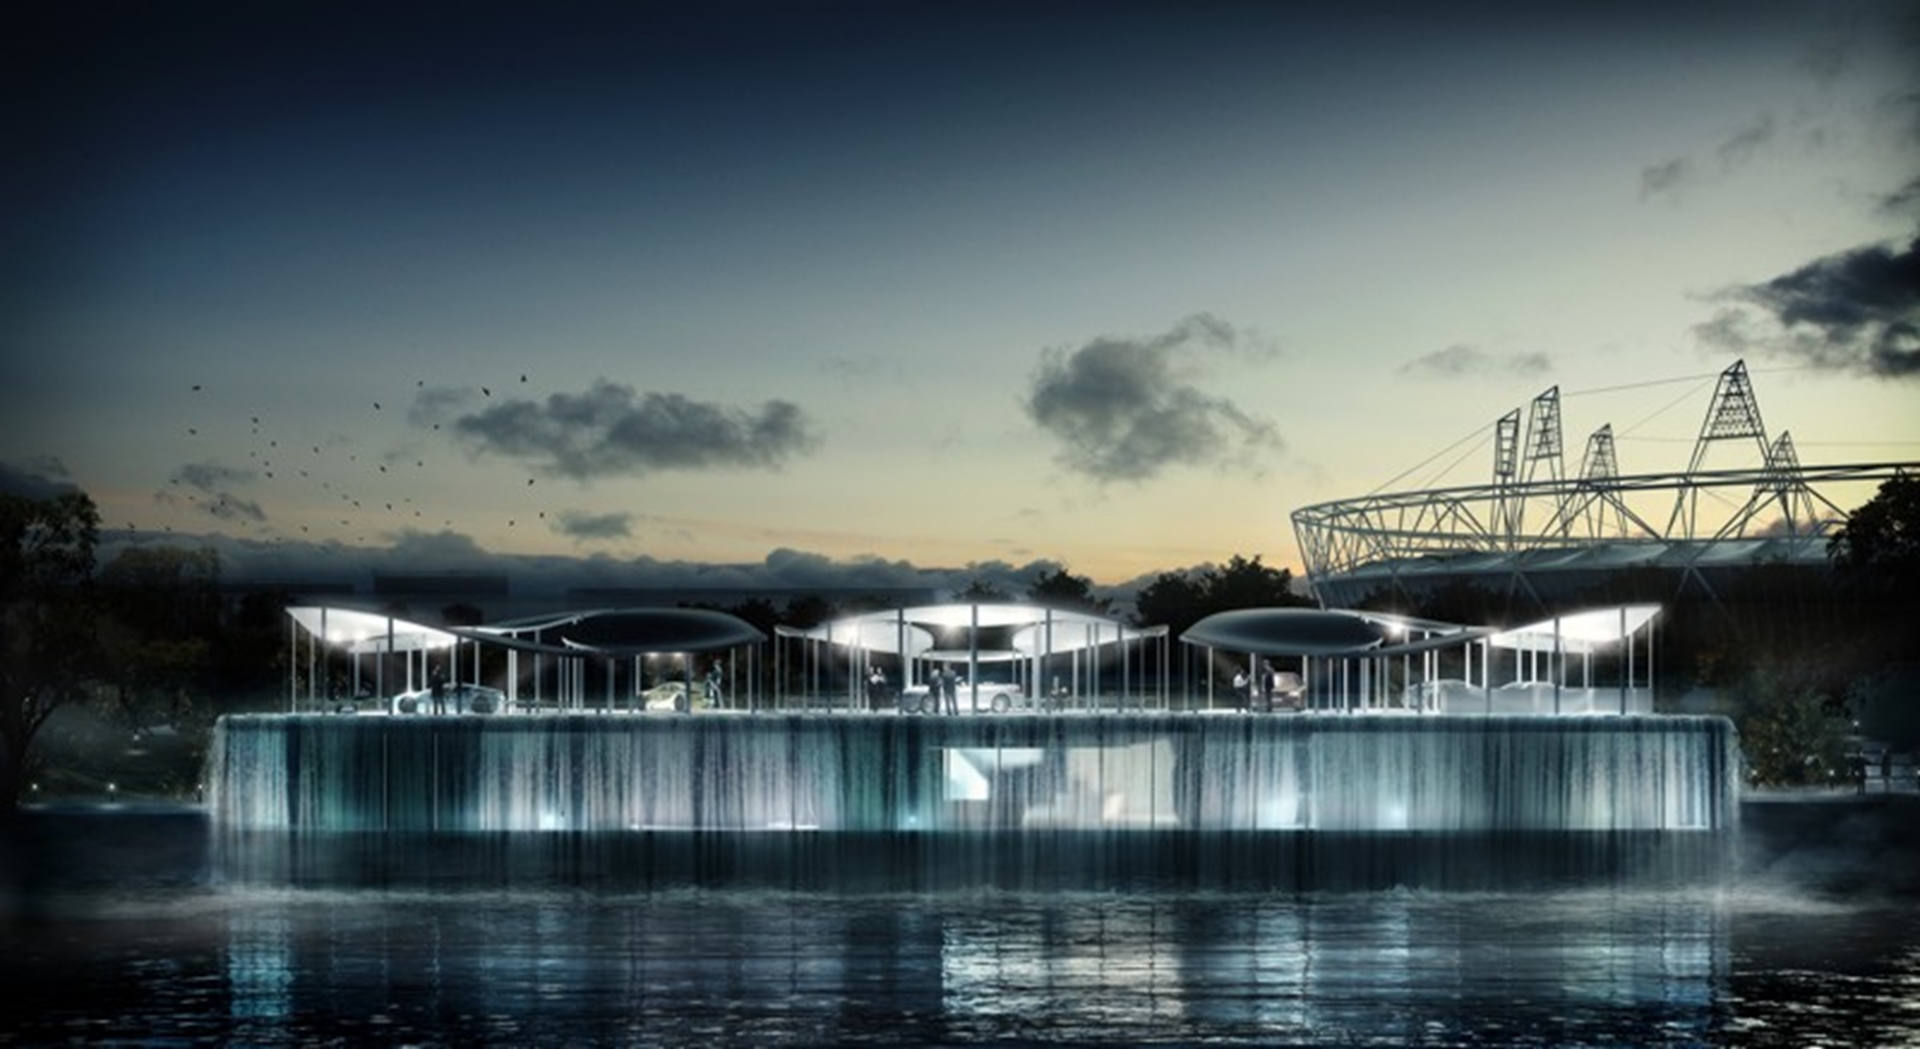 BMW Group reveals winning design for Olympic pavilion